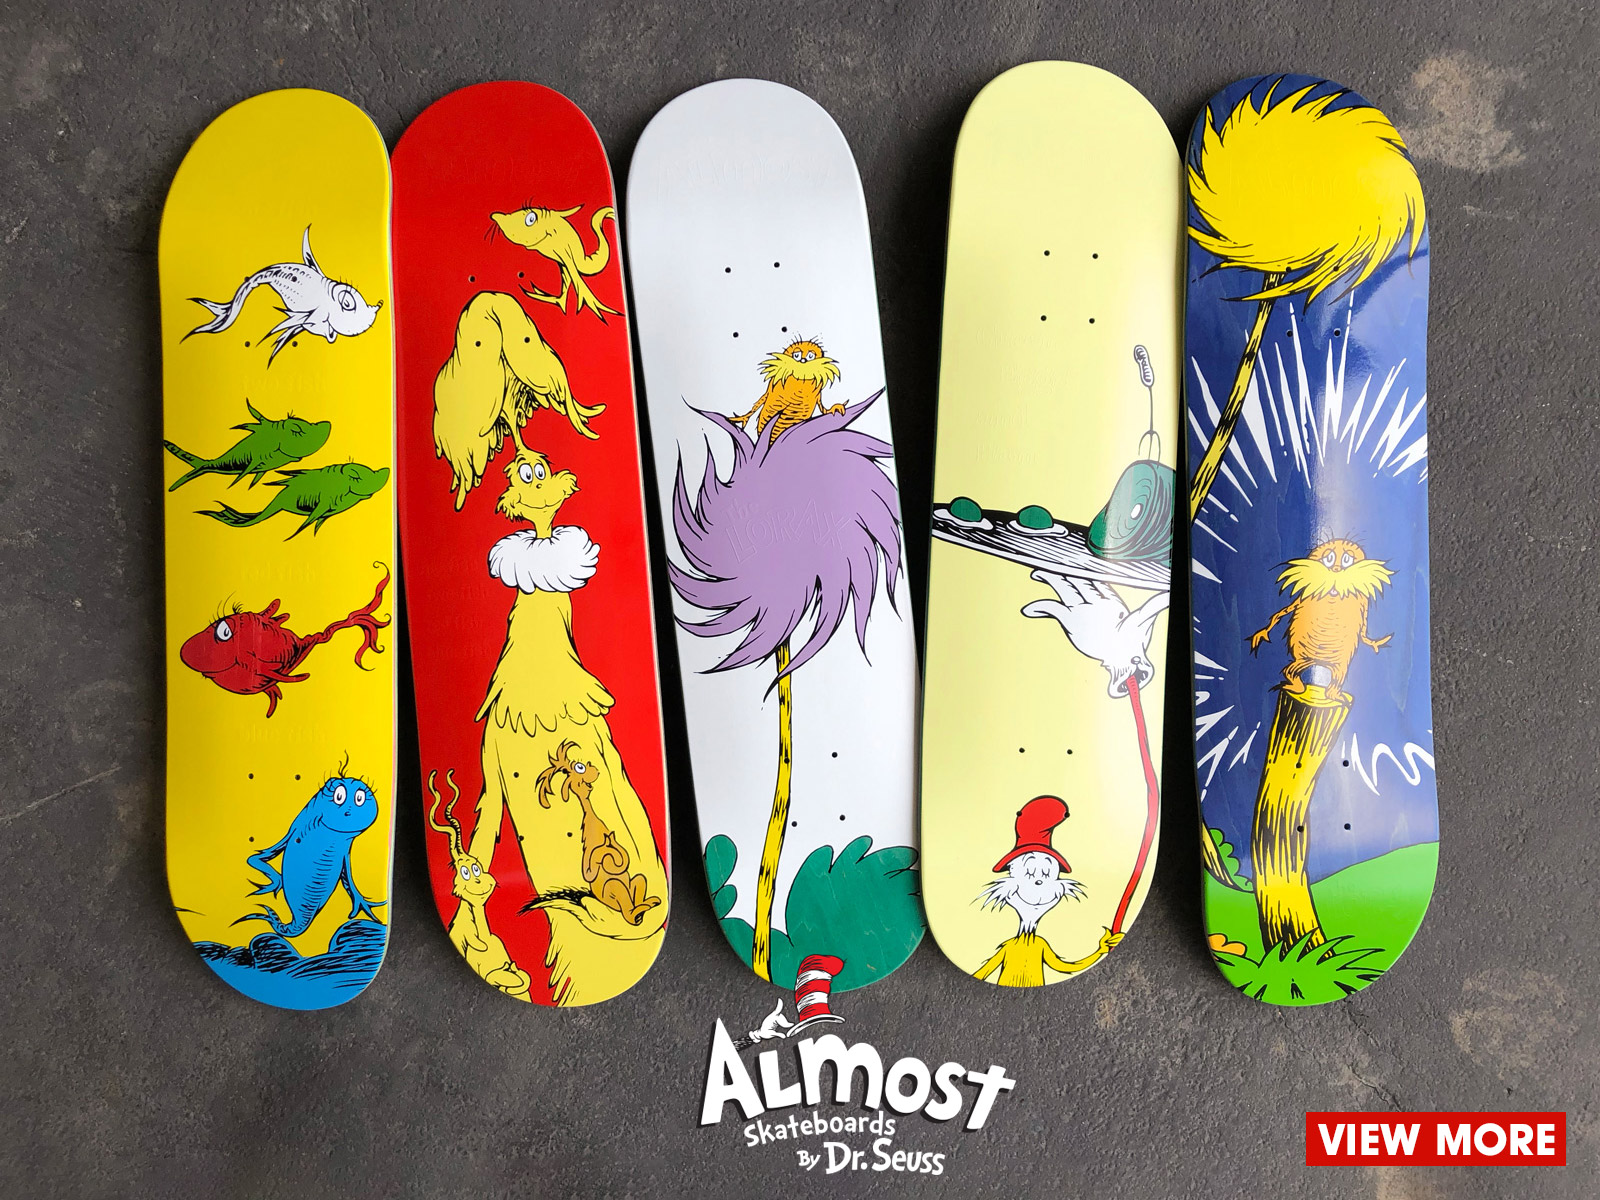 Almost_Skateboards_by_Dr_Seuss_Fall19.jpg